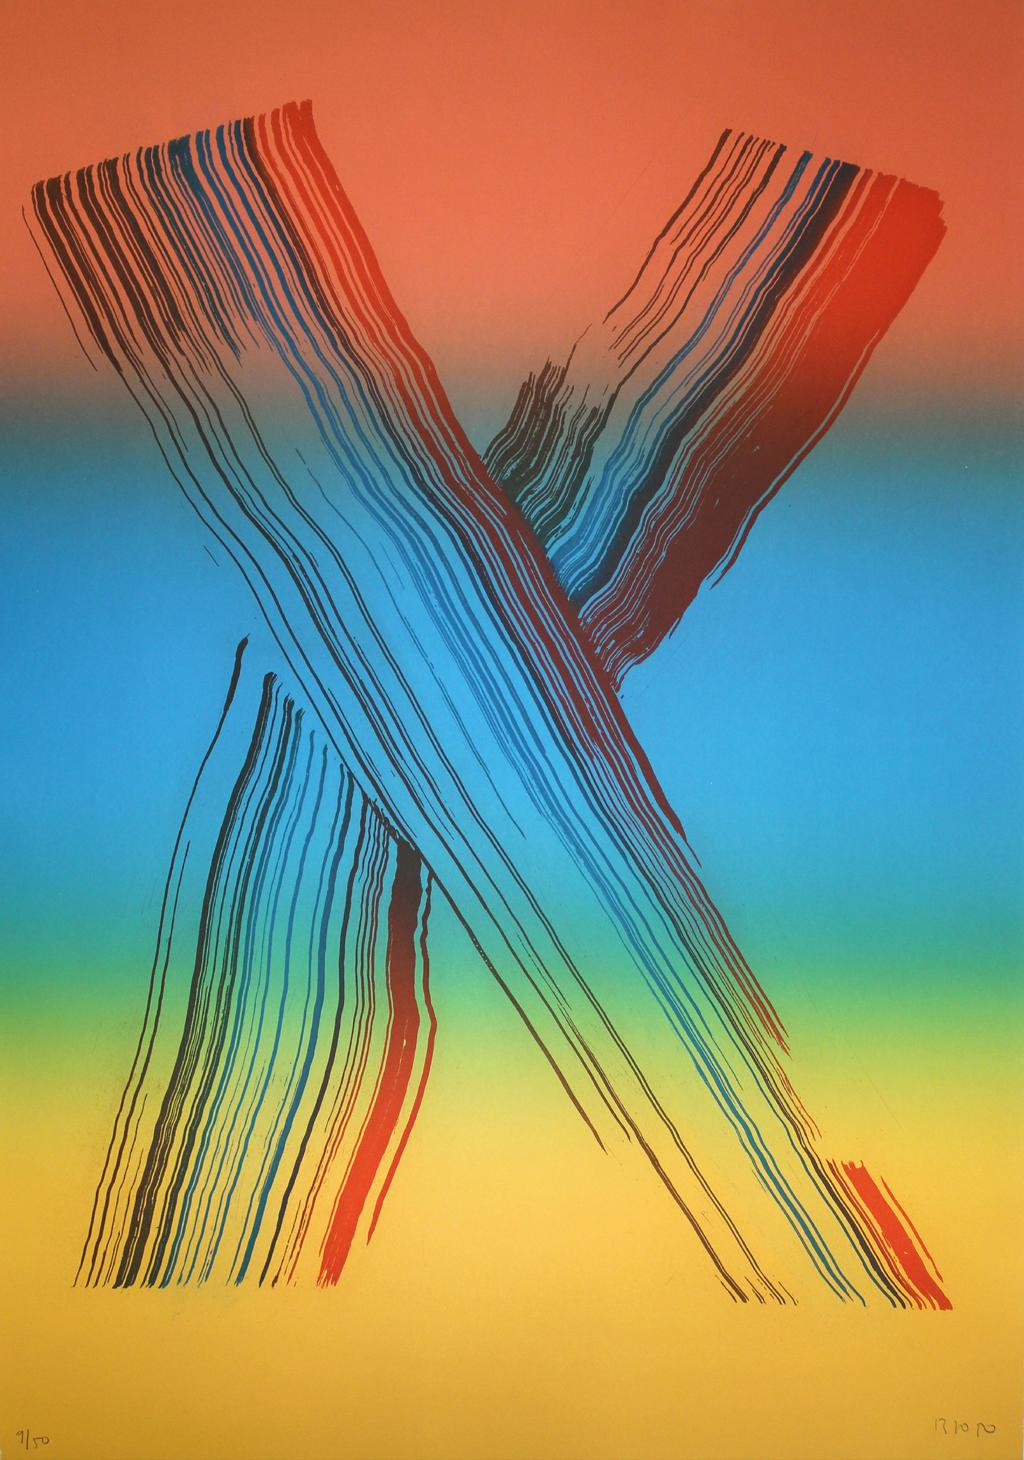 JOSE MANUEL BROTO: Iris 2. Limited edition etching on paper. Lyrical abstraction